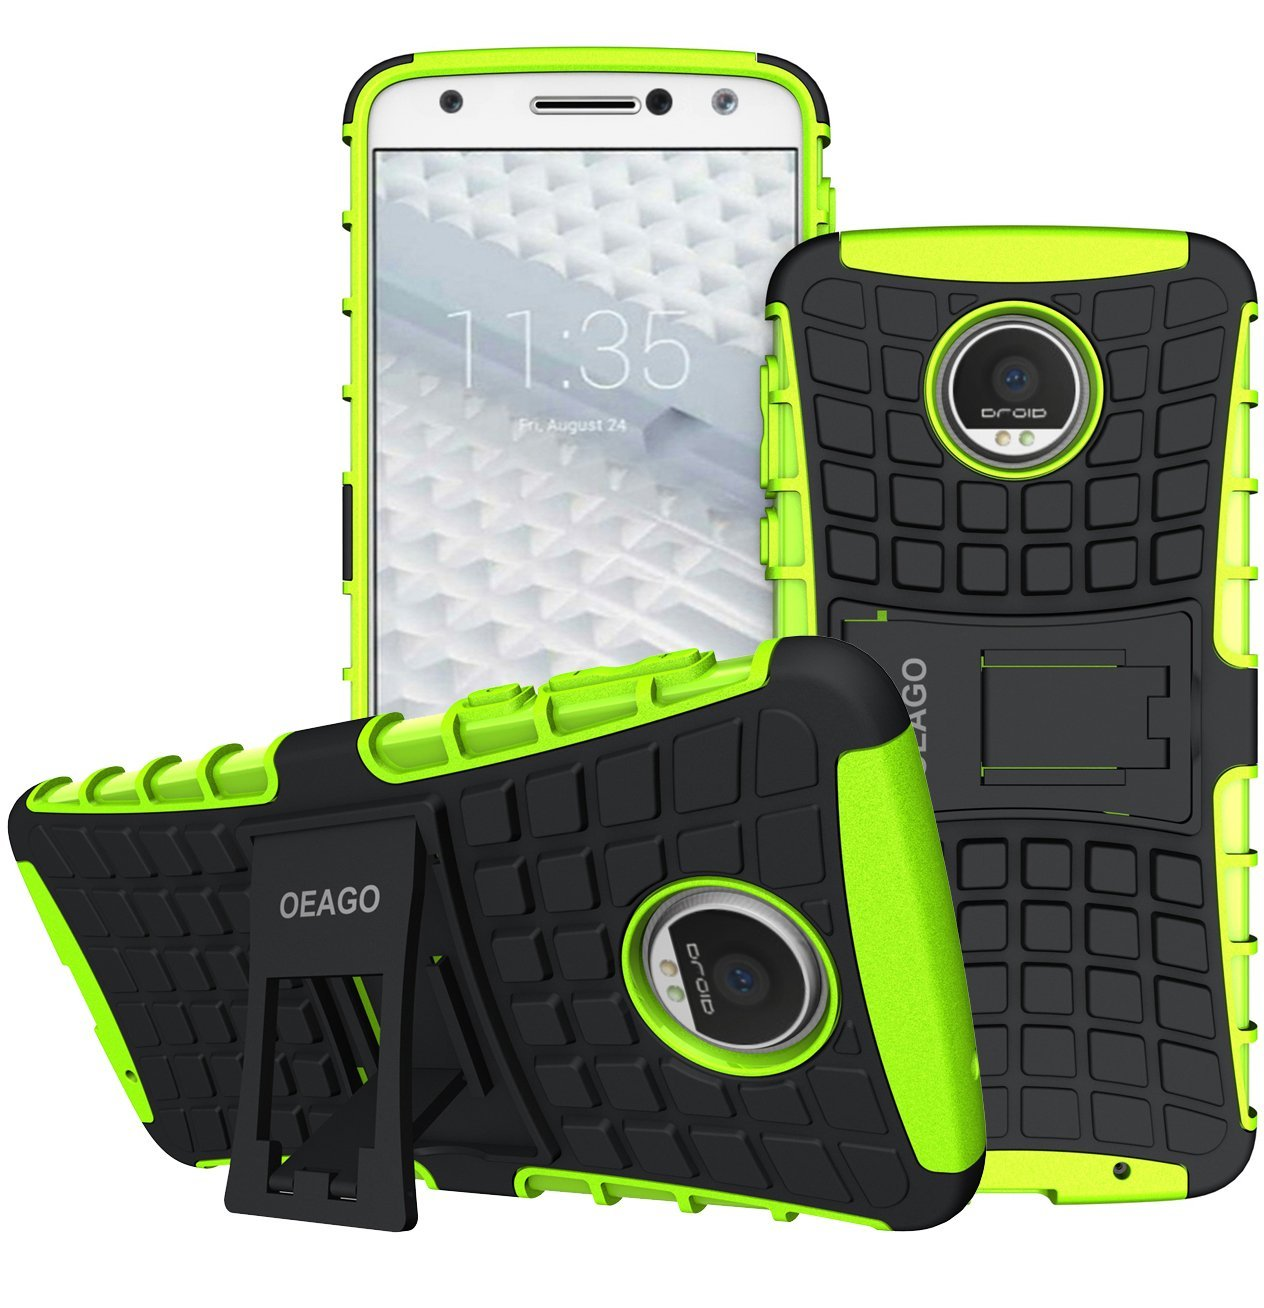 Moto Z Droid Case, OEAGO Motorola Z Droid Case [Shockproof] [Impact Protection] Tough Rugged Dual Layer Protective Case with Kickstand for Moto Z / Moto Z Droid Edition (NOT for Moto Z Force) - Green